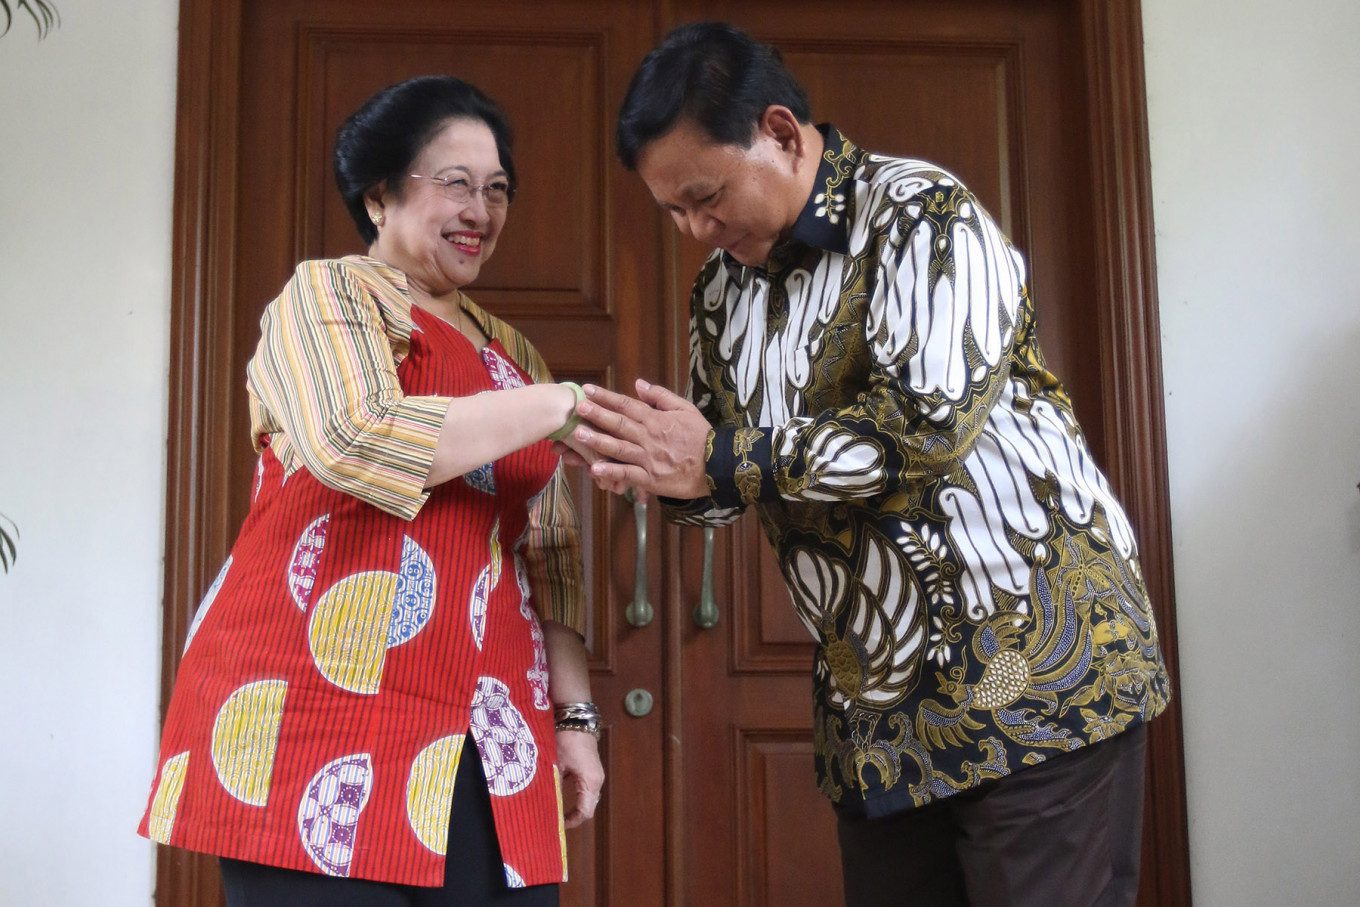 I helped Prabowo when he was 'abandoned' and 'stateless': Megawati